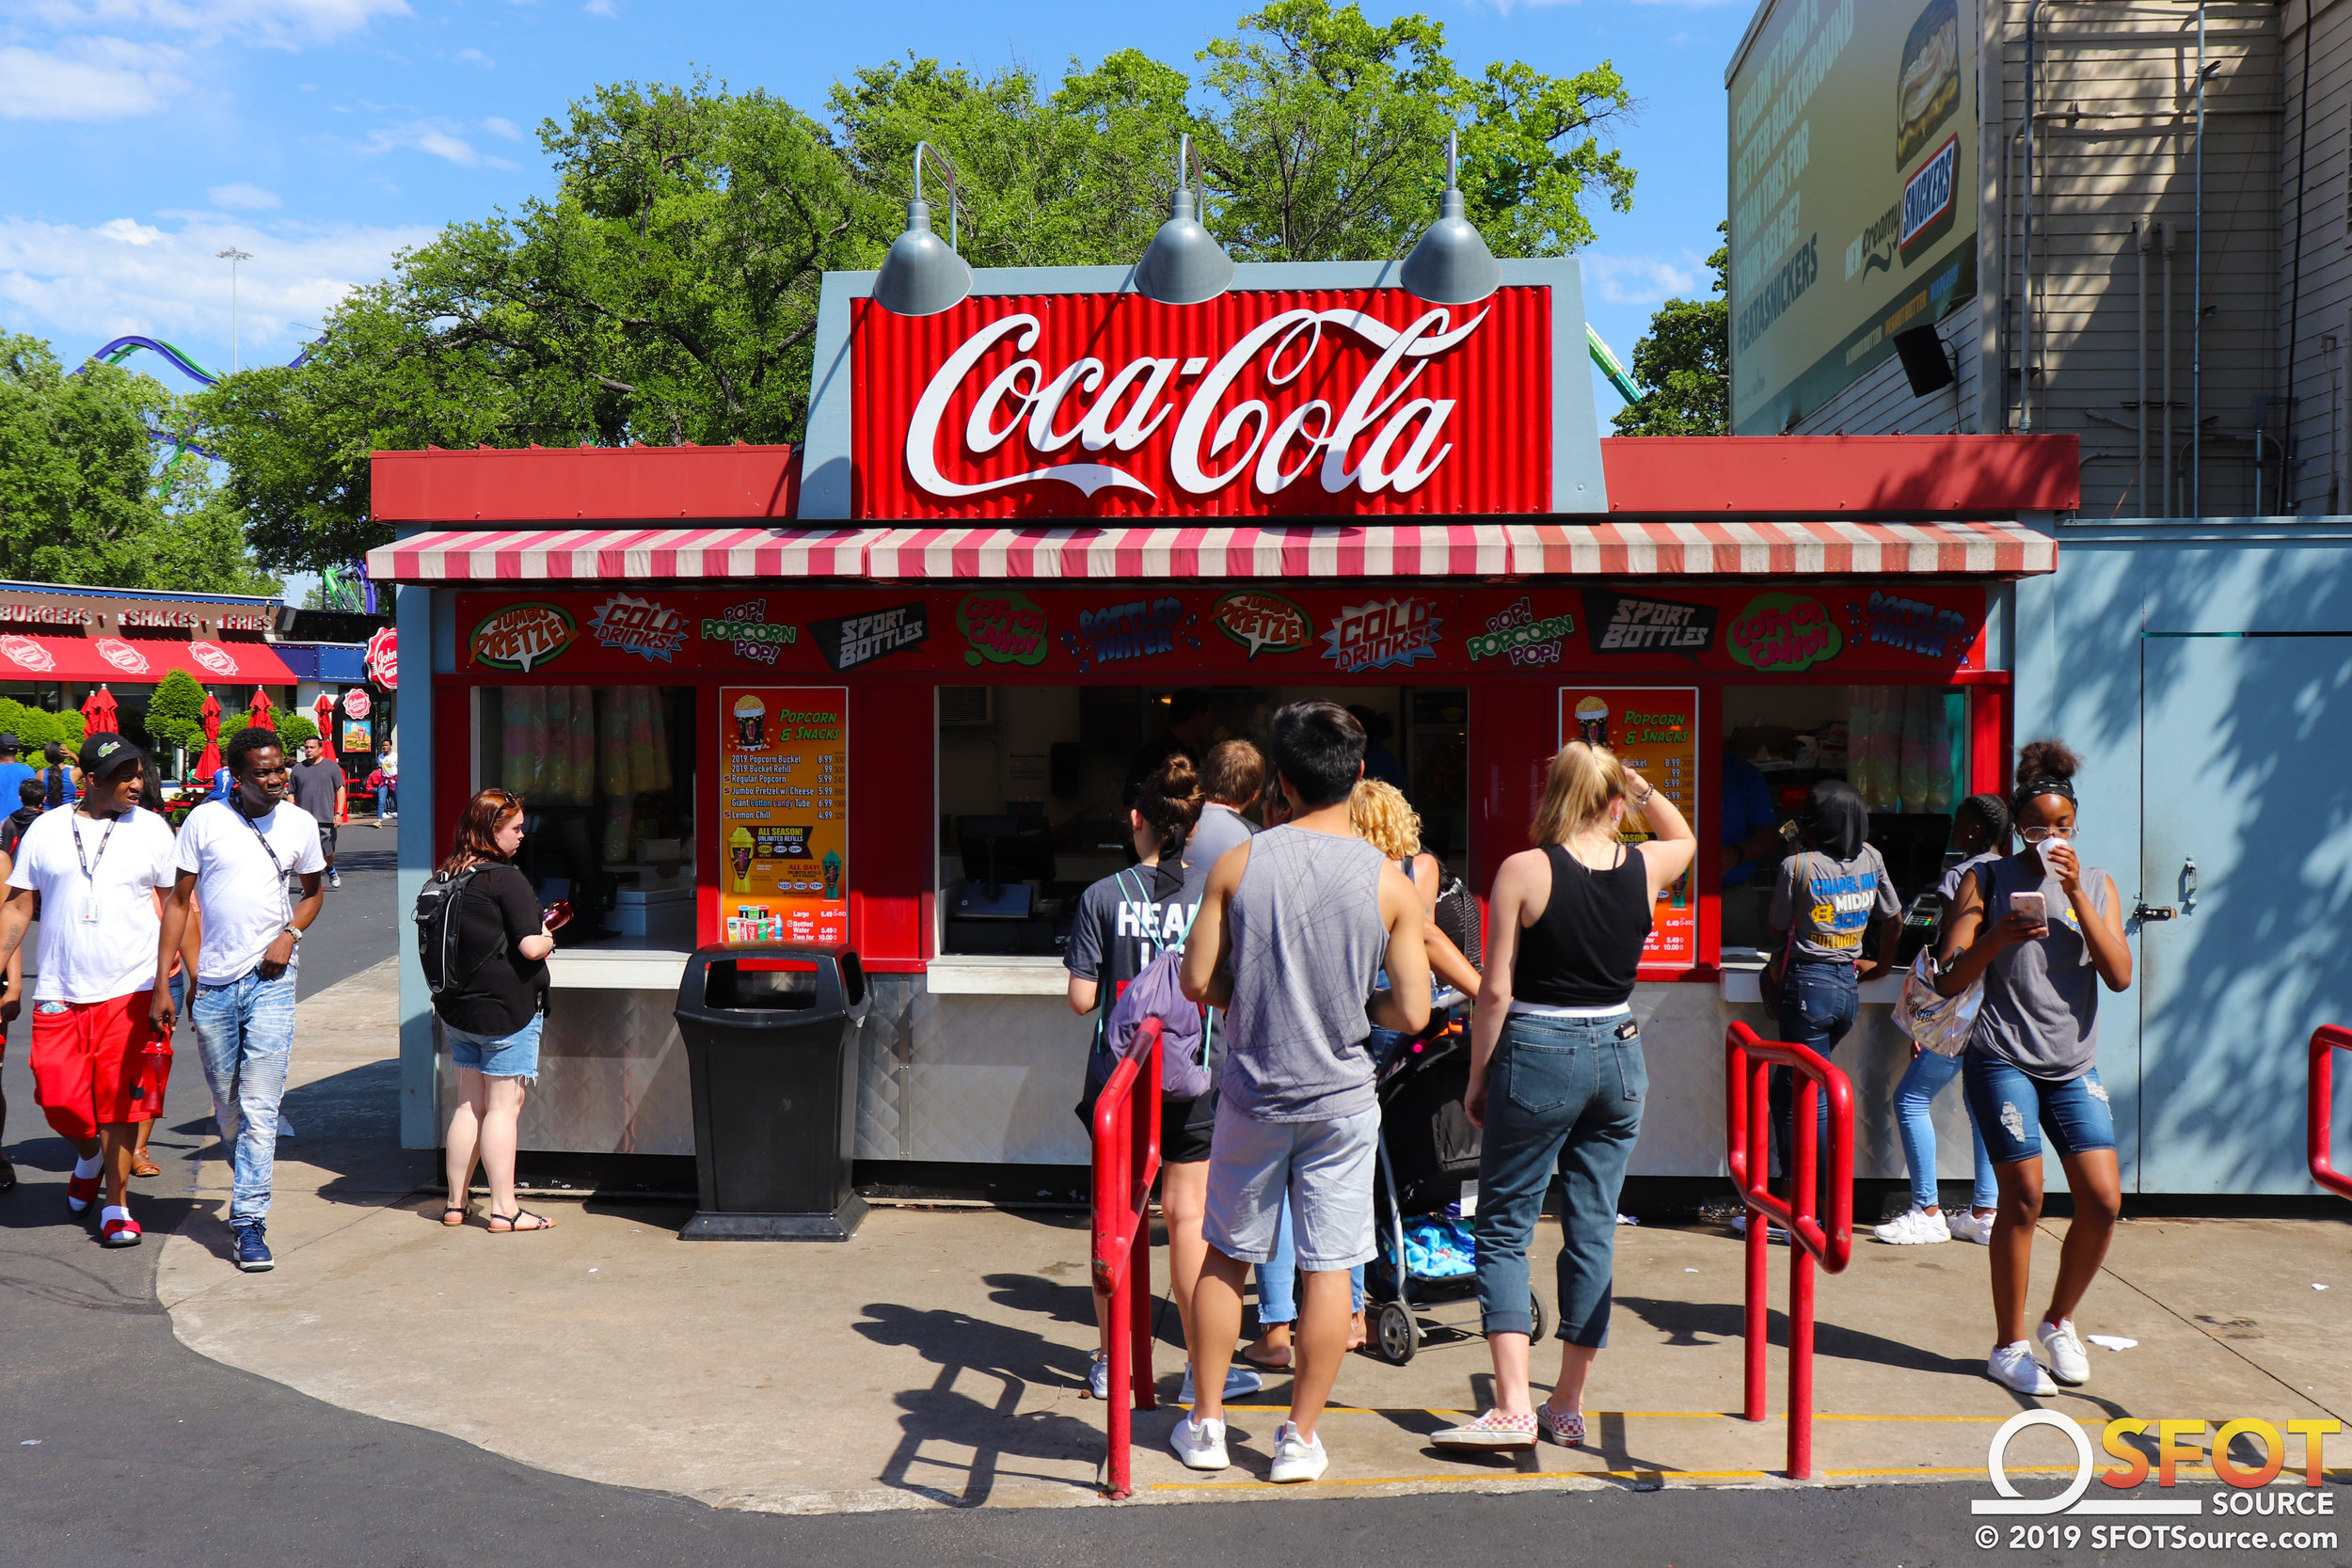 Mr. Freeze Snacks is an outdoor food stand located in the park's Gotham City section.